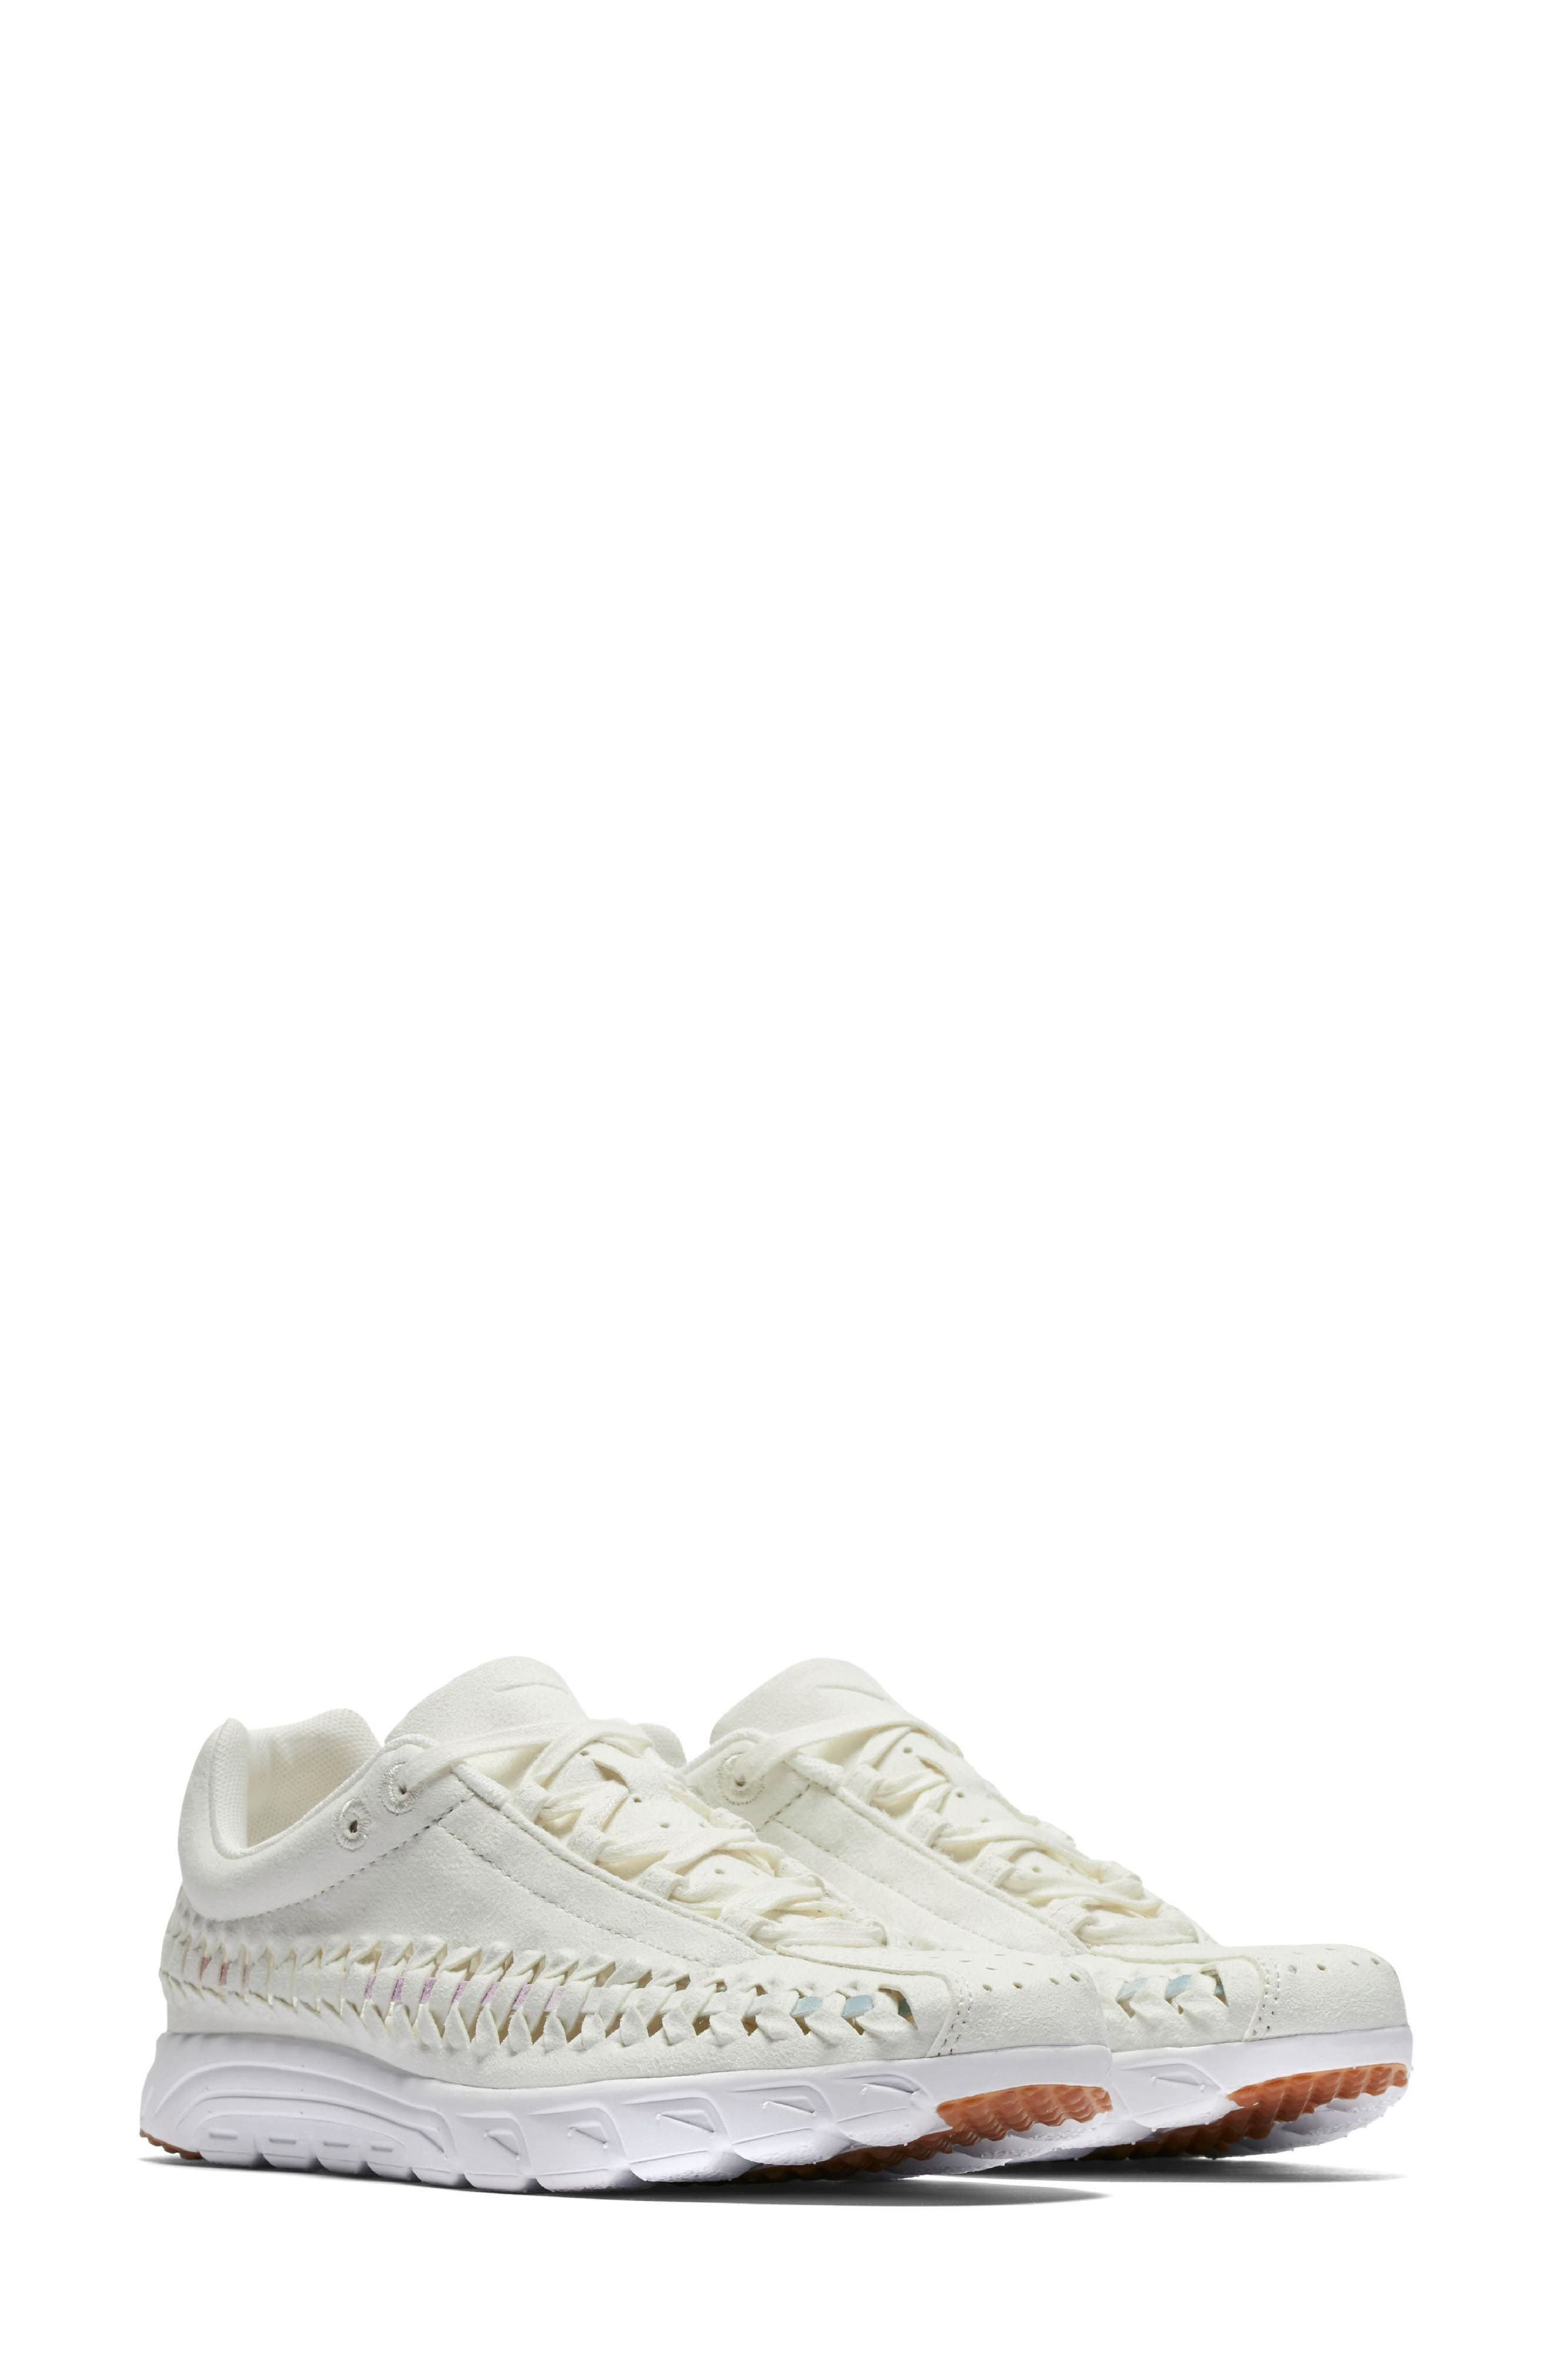 Mayfly Woven Sneaker,                         Main,                         color, 603